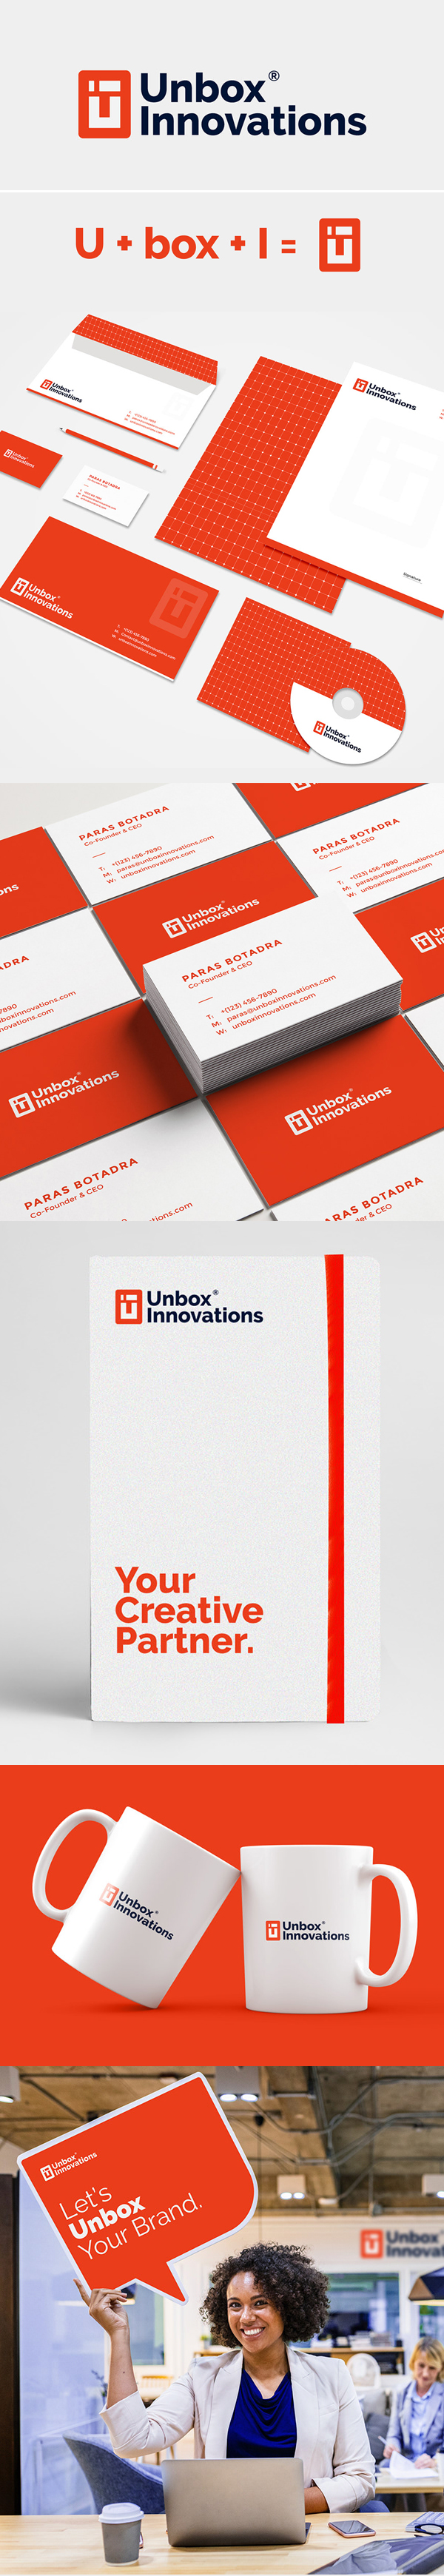 Branding: Unbox Innovations Logo design and Branding by Kanhaiya Sharma